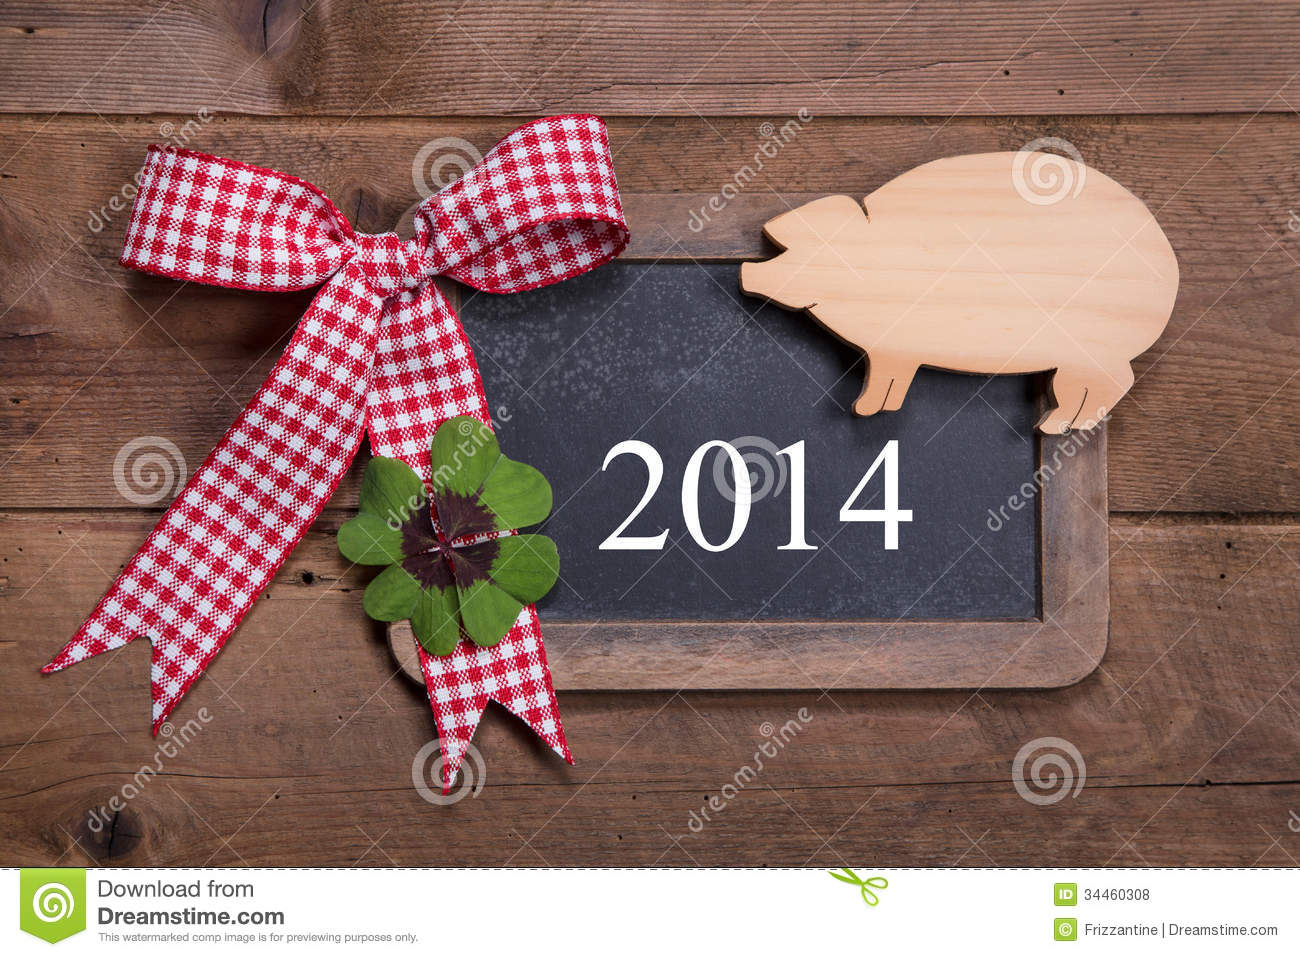 Happy New Year 2014 Greeting Card On A Wooden Background Royalty Free Stock Photos Image